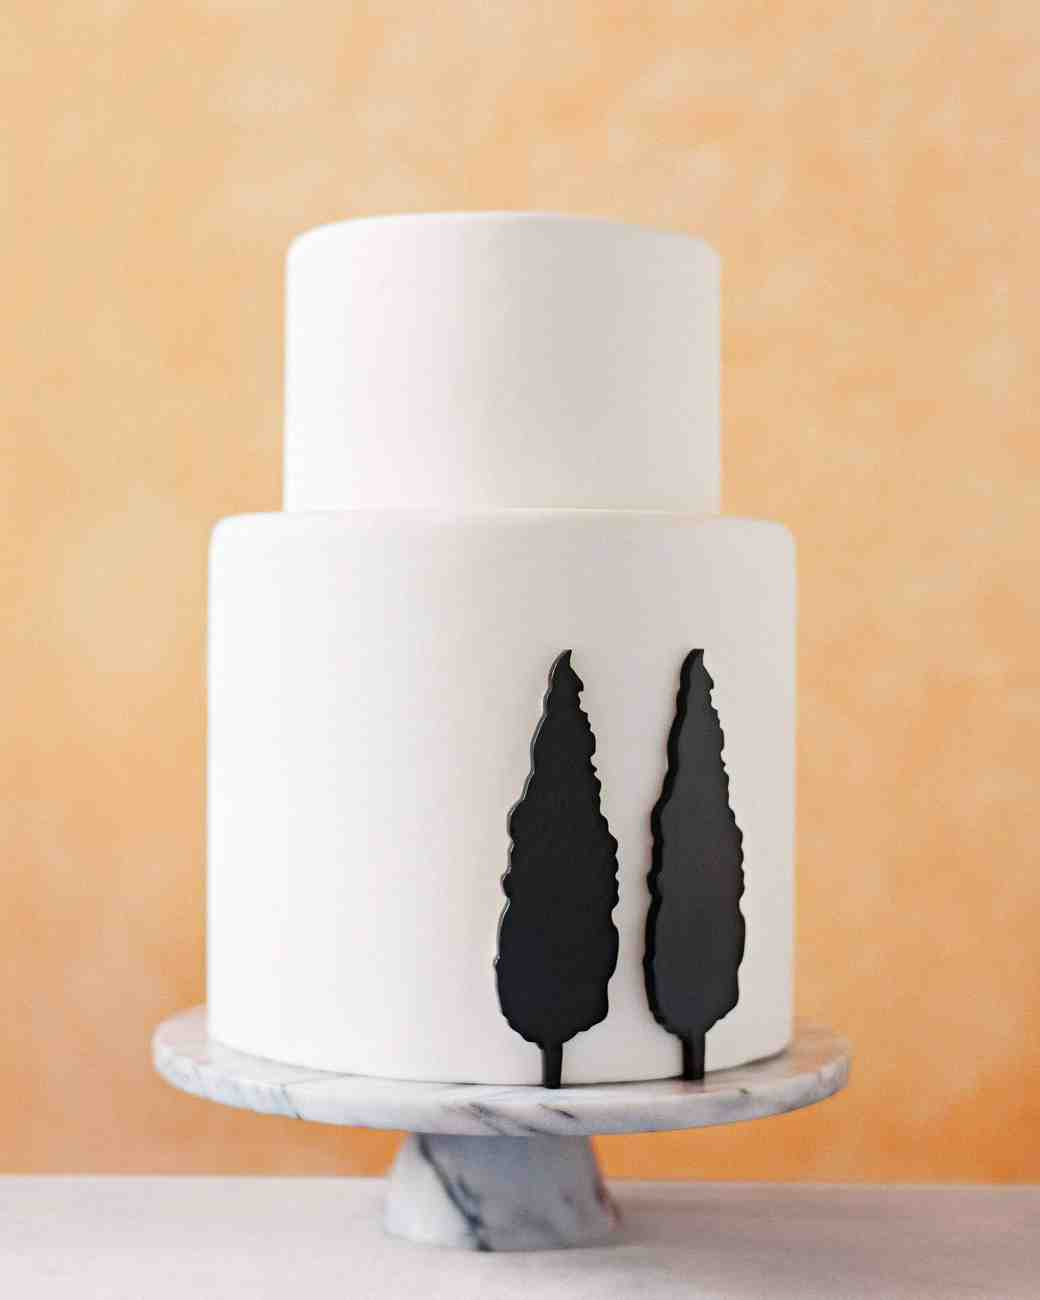 White Cake with Black Fondant Cyprus Trees